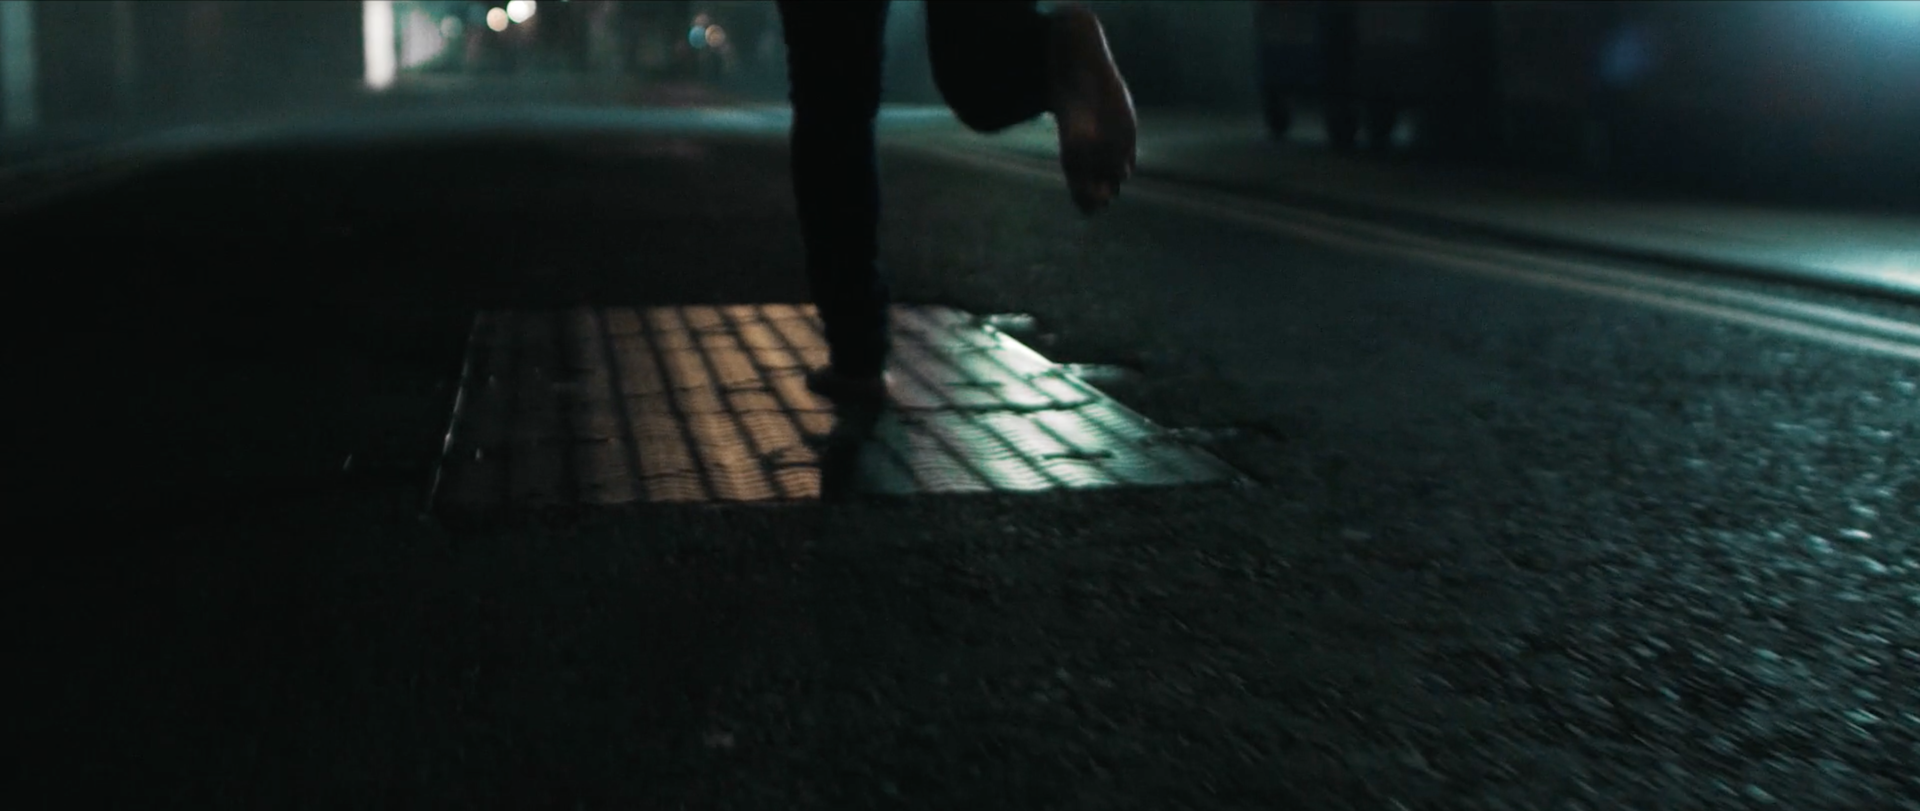 Image of running in the street from the film